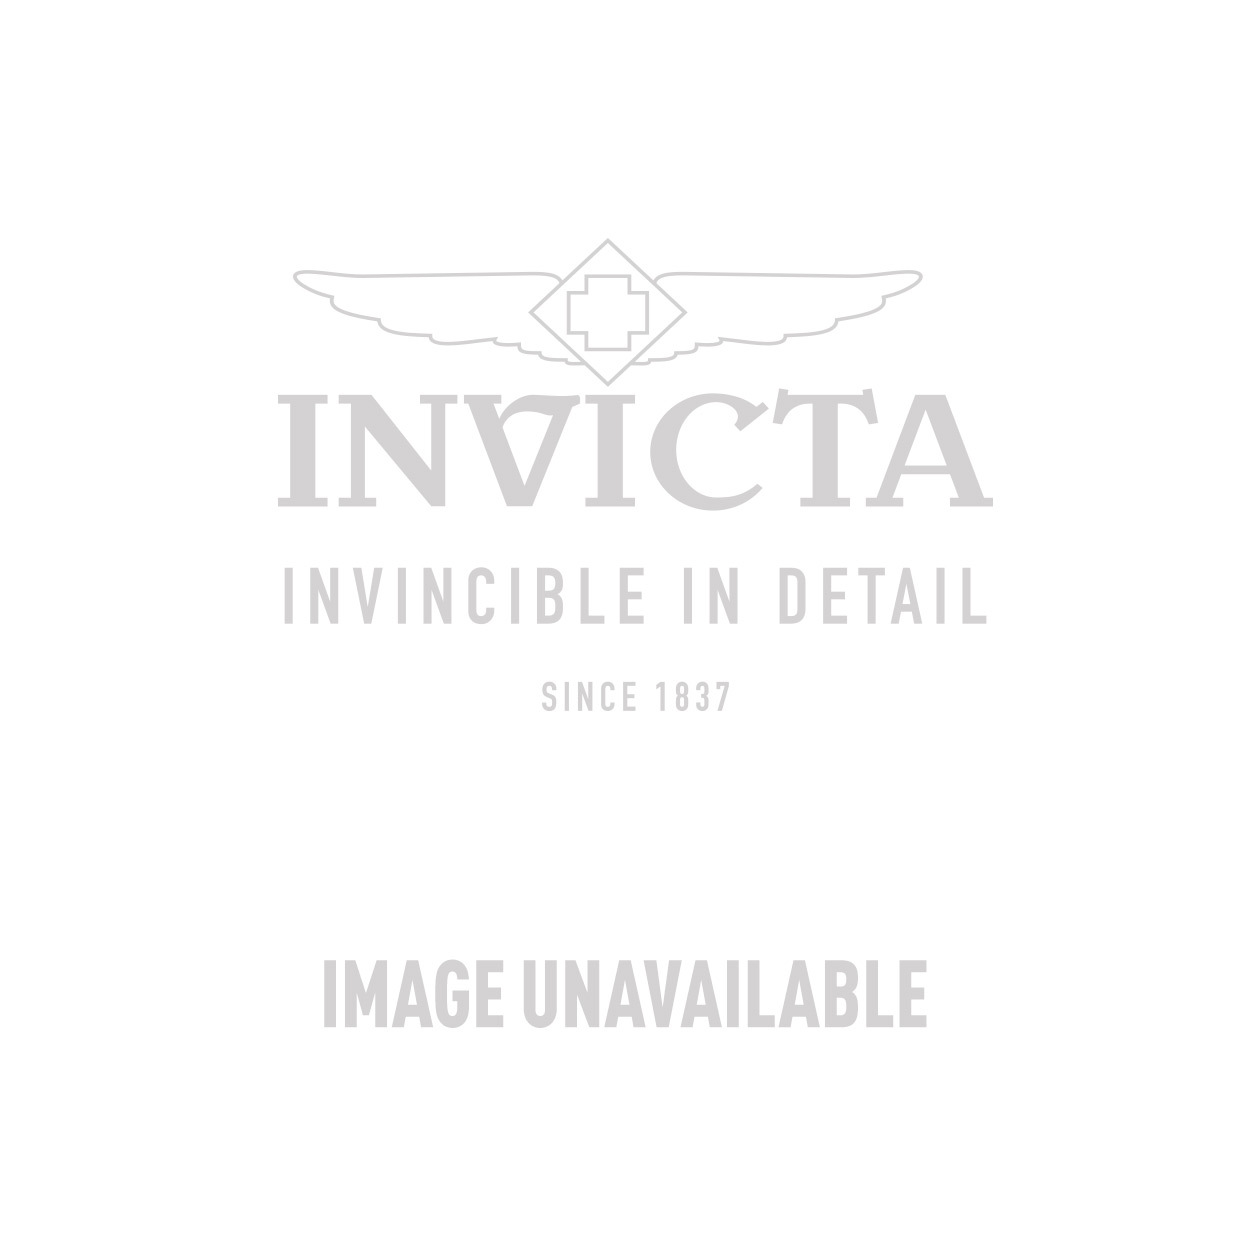 Invicta Subaqua Swiss Made Quartz Watch - Gunmetal, Stainless Steel case with Steel, Gunmetal tone Stainless Steel band - Model 15955